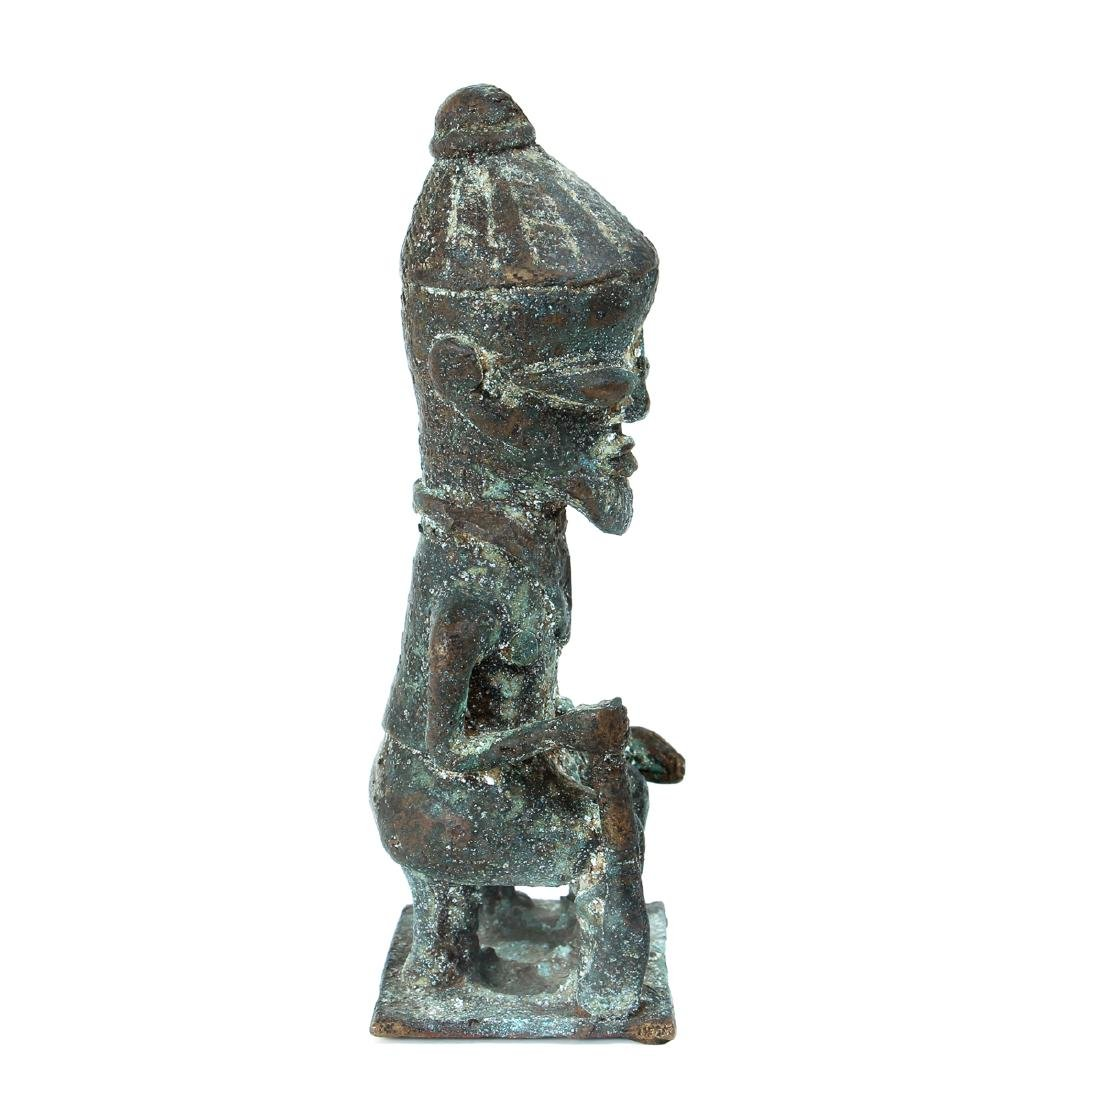 20th Century African Seated Male Figure Cast Bronze - 4